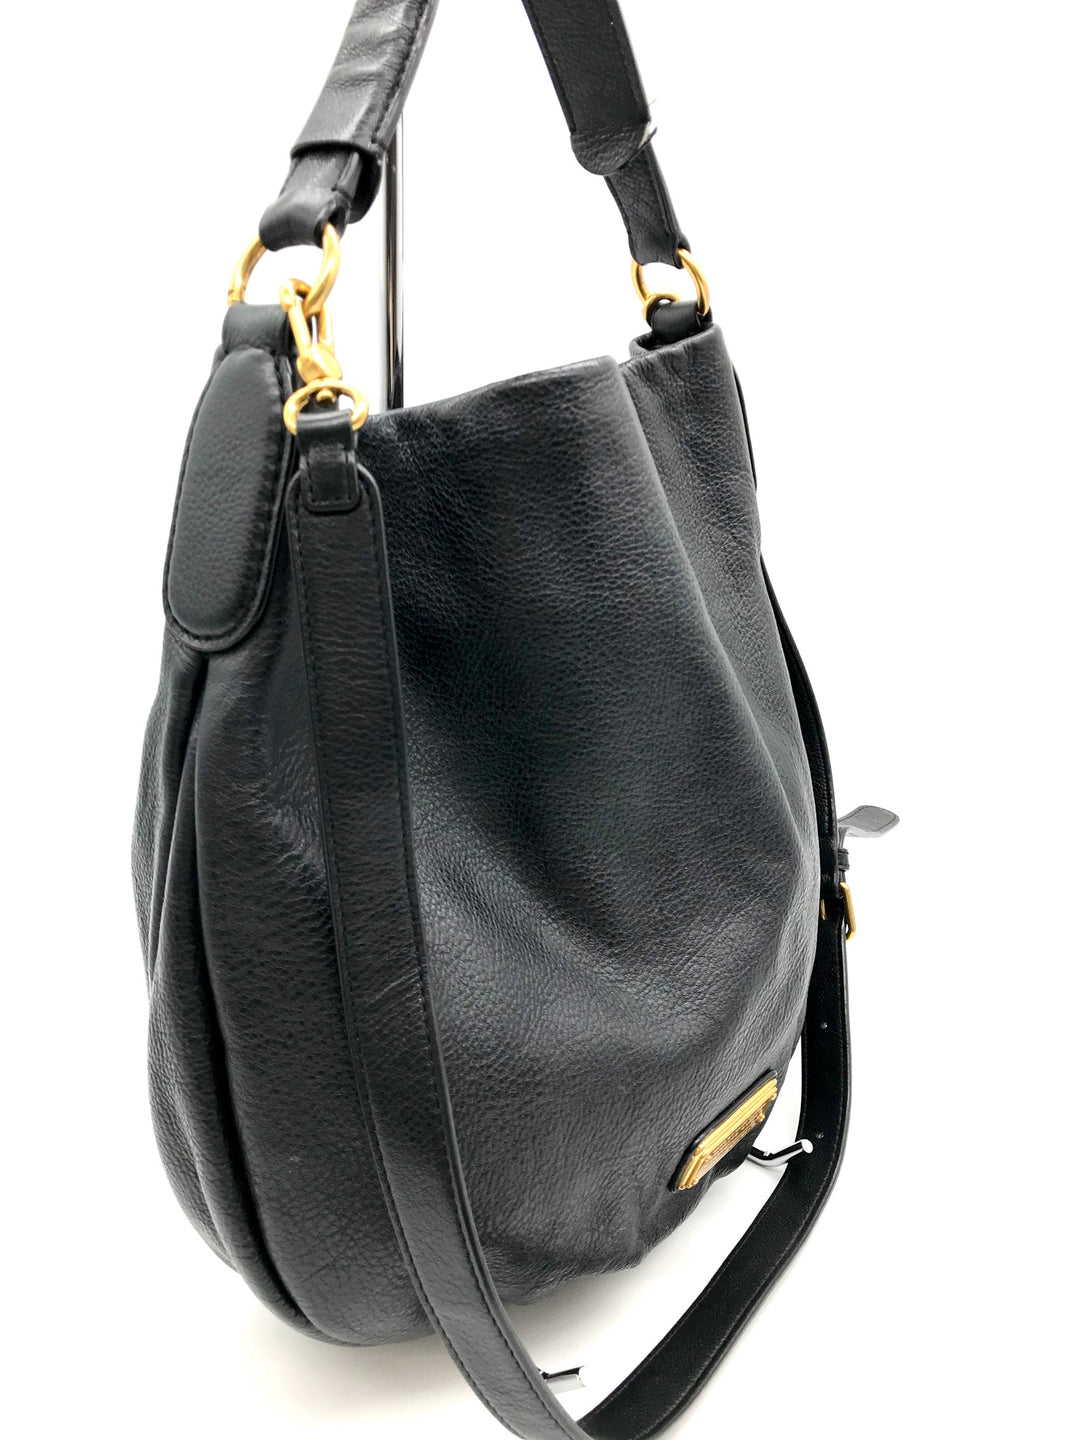 Photo #1 - BRAND: MARC BY MARC JACOBS <BR>STYLE: HANDBAG DESIGNER <BR>COLOR: LEATHER <BR>SIZE: LARGE <BR>SKU: 262-26241-32891<BR>SOME MARKS INSIDE - AS IS<BR>DESIGNER BRAND - FINAL SALE